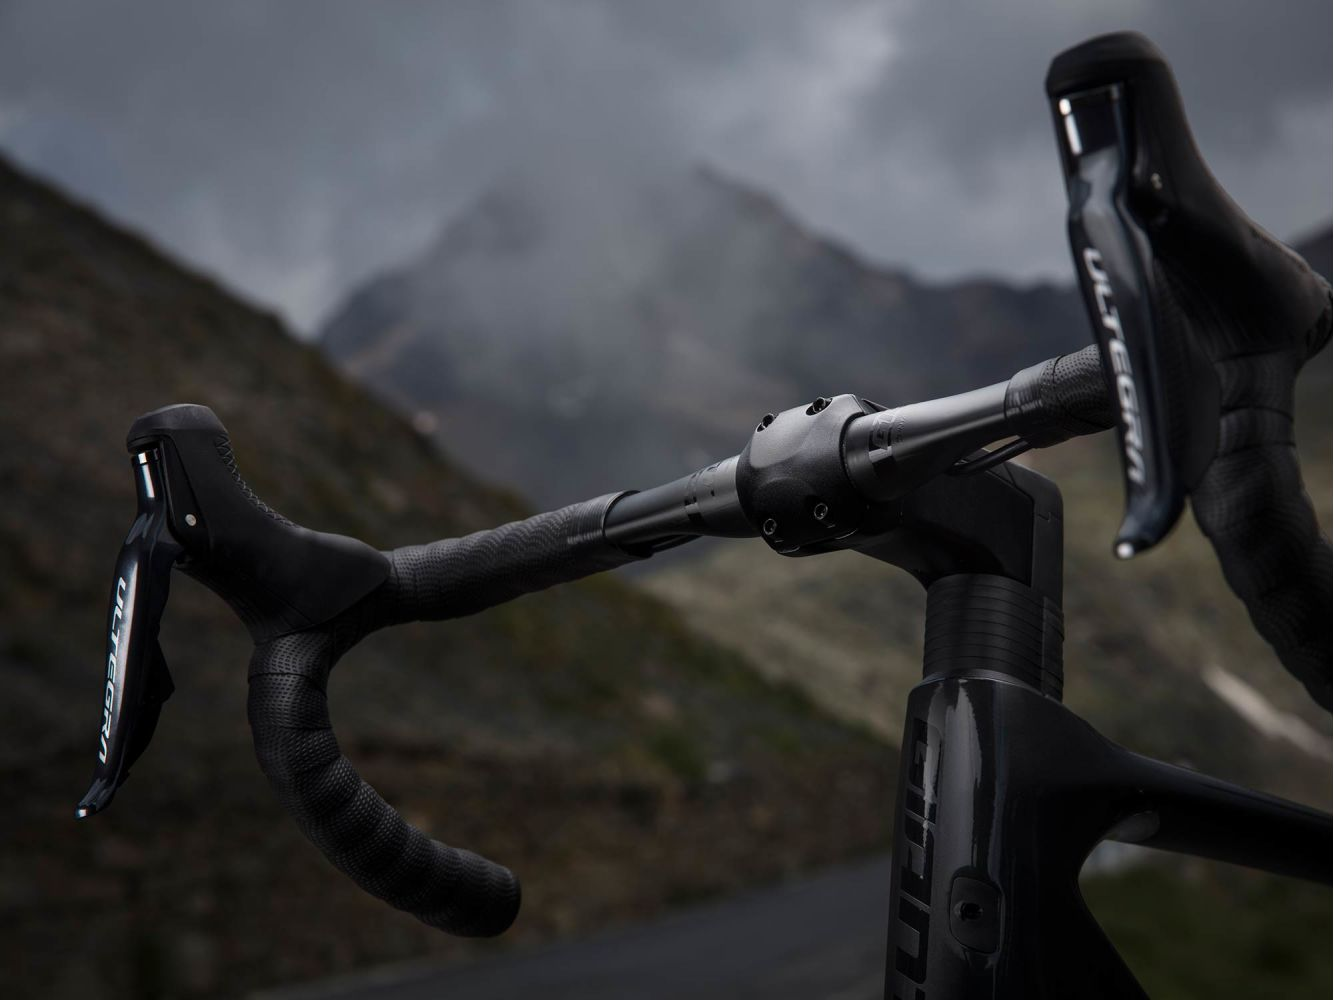 D-Fuse Technology | Giant Bicycles Official site